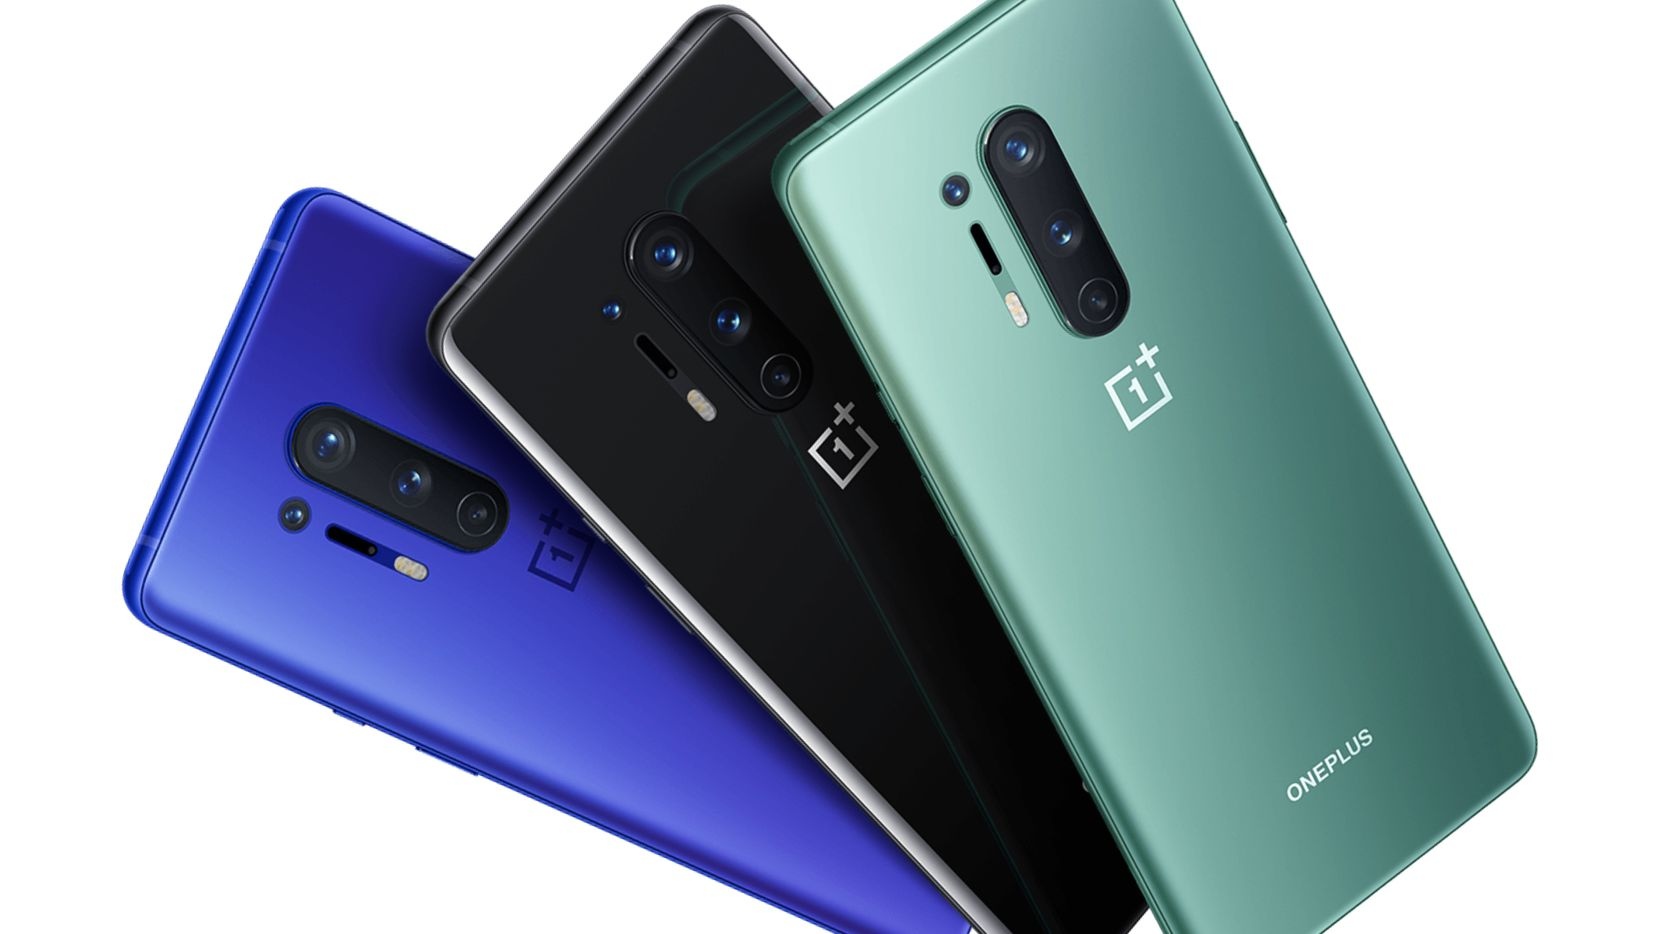 The OnePlus 8 Pro comes in Onyx Black, Ultramarine Blue and Glacial Green.